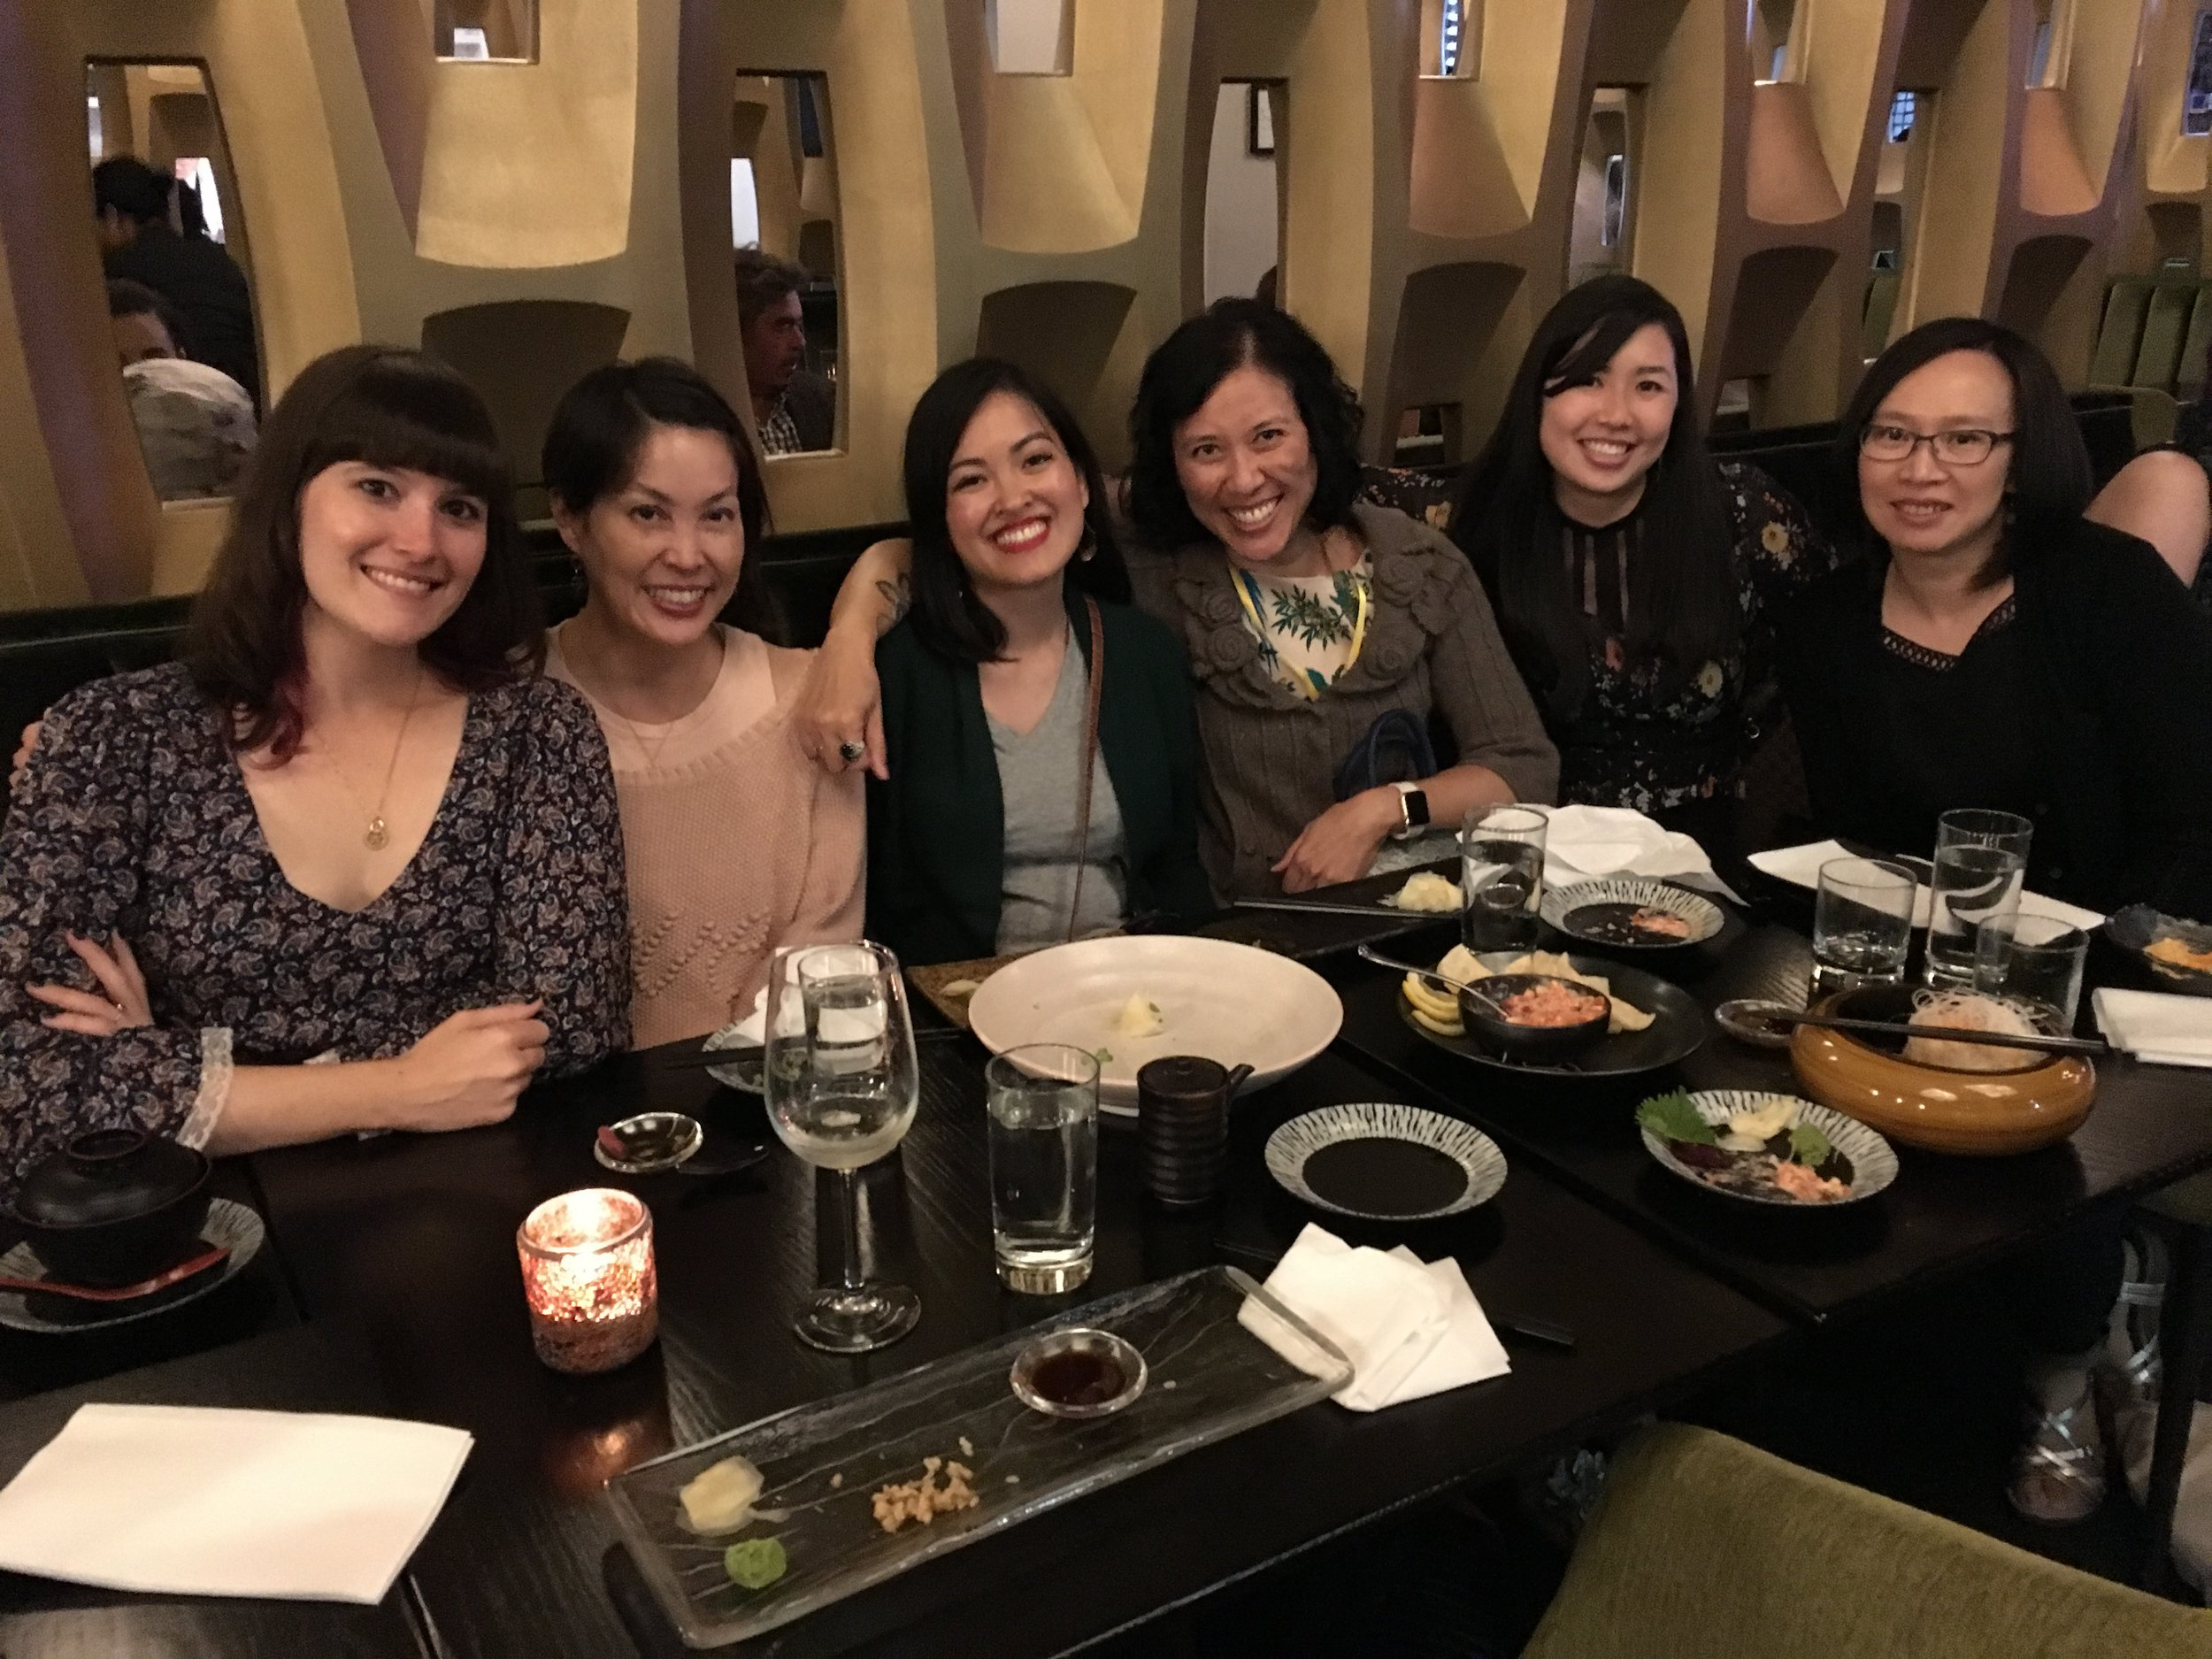 from a meeting of the ya asian mafia on sept. 23, 2017. Left to right: tara sim, stacey lee, julie dao, cindy pon, traci chee, and me.